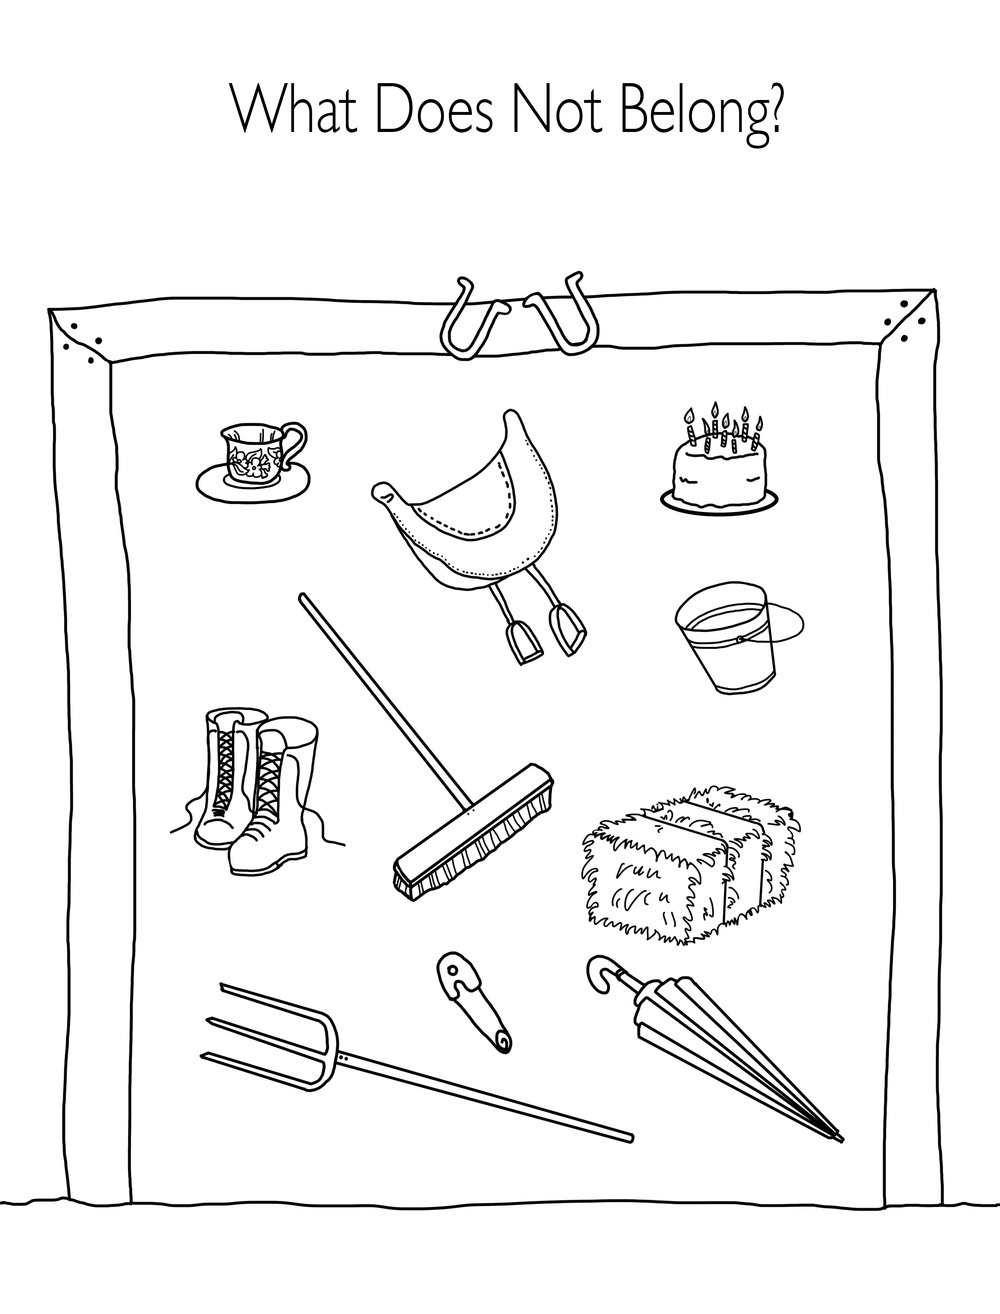 Coloring Page 04 What Doesnt Belong.jpg